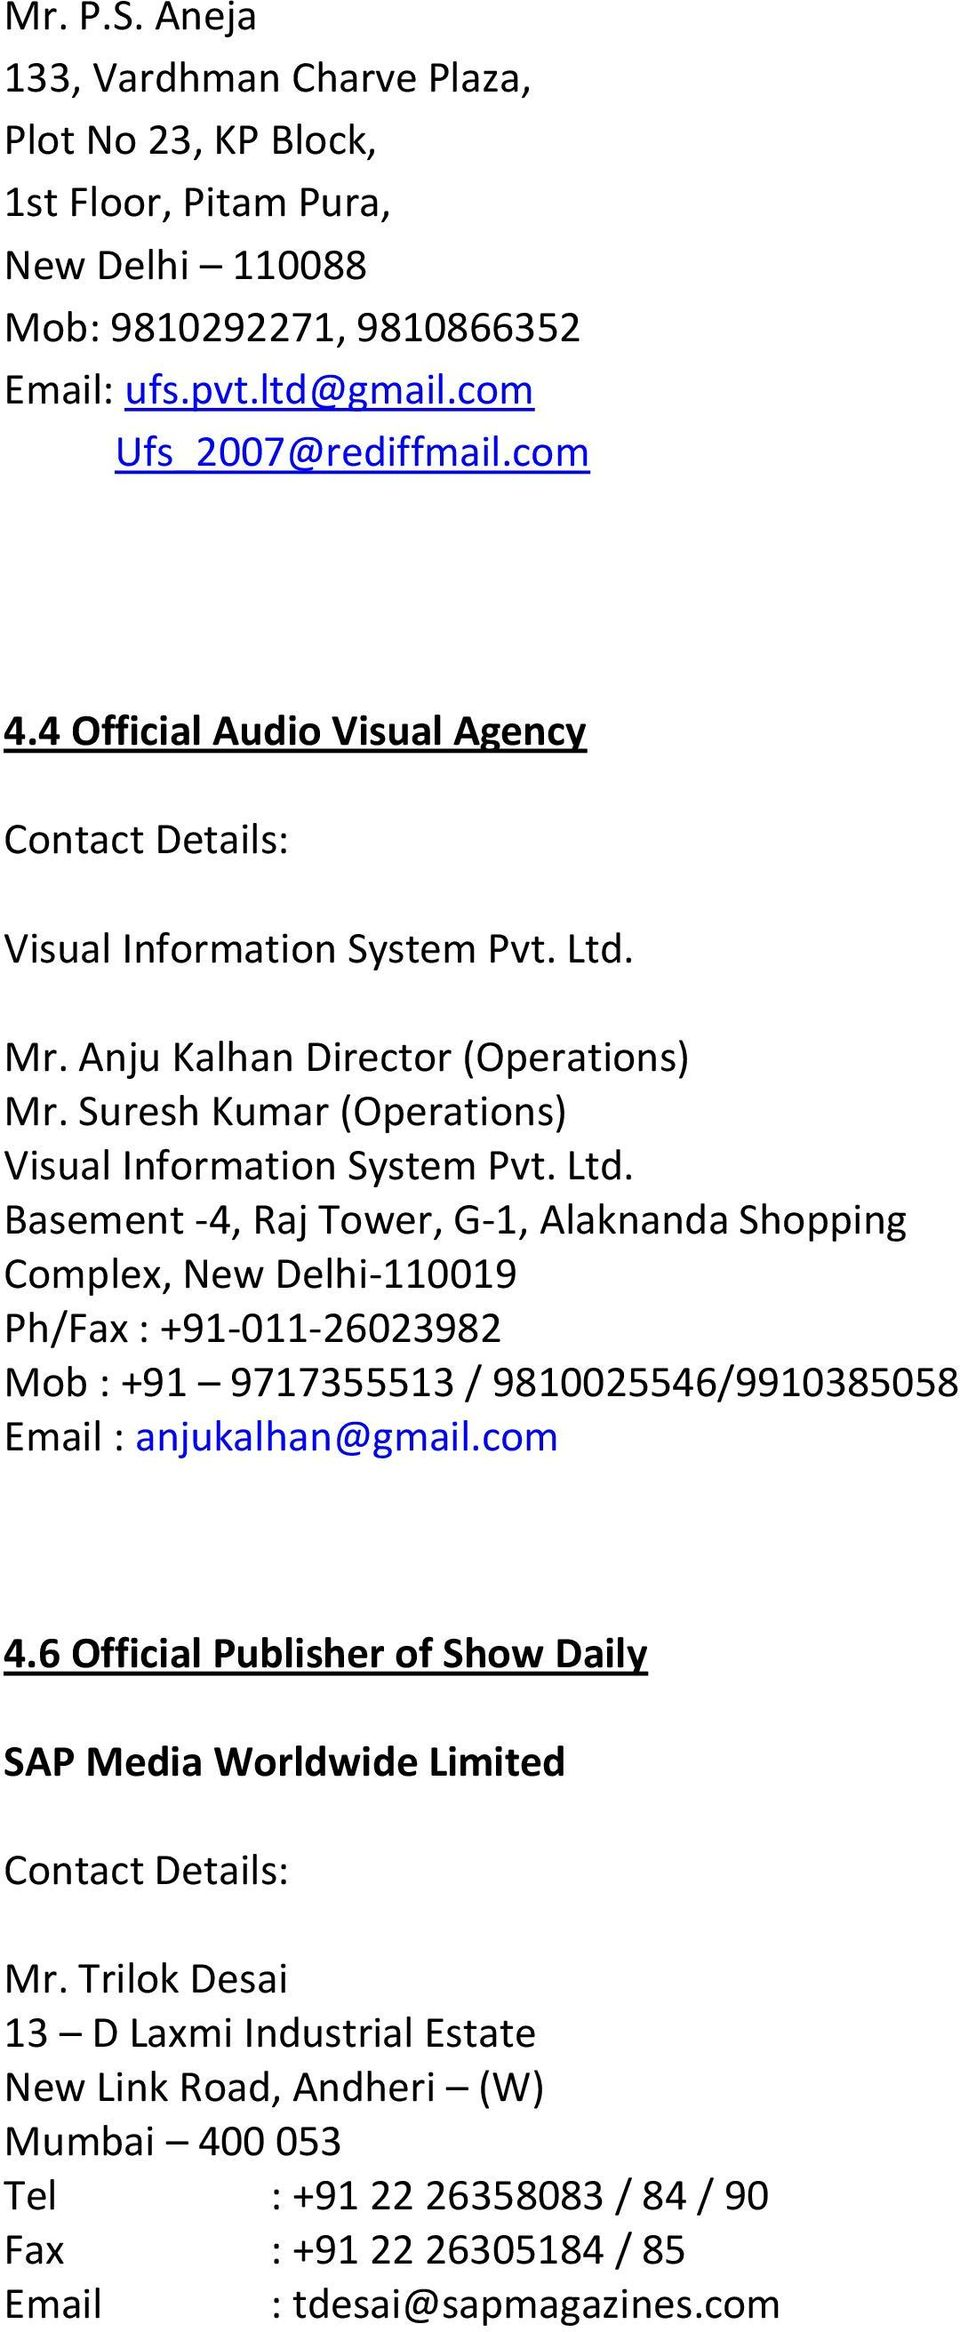 Mr. Anju Kalhan Director (Operations) Mr. Suresh Kumar (Operations) Visual Information System Pvt. Ltd.